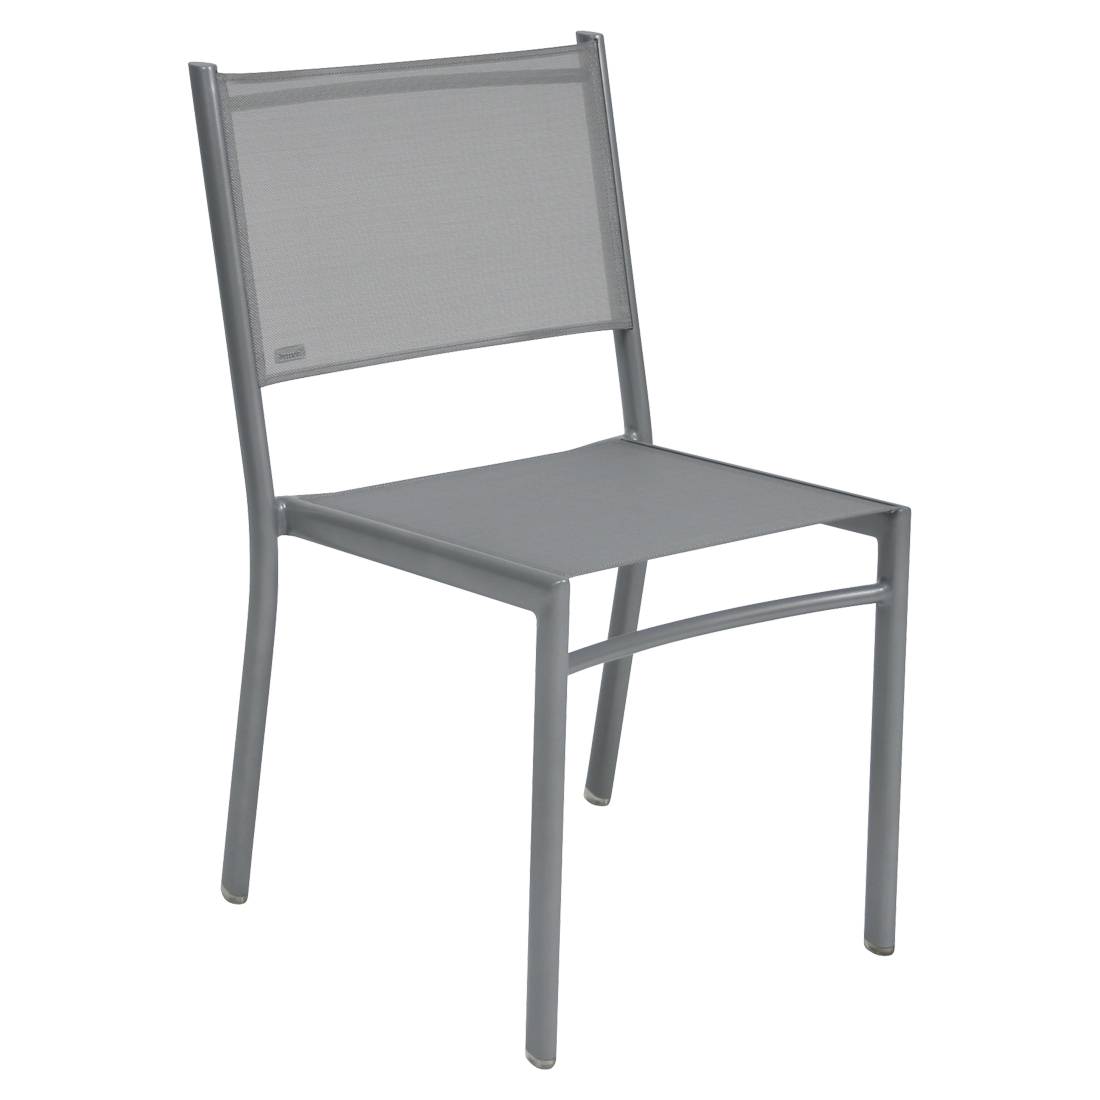 outdoor table and chairs png. outdoor table and chairs png n